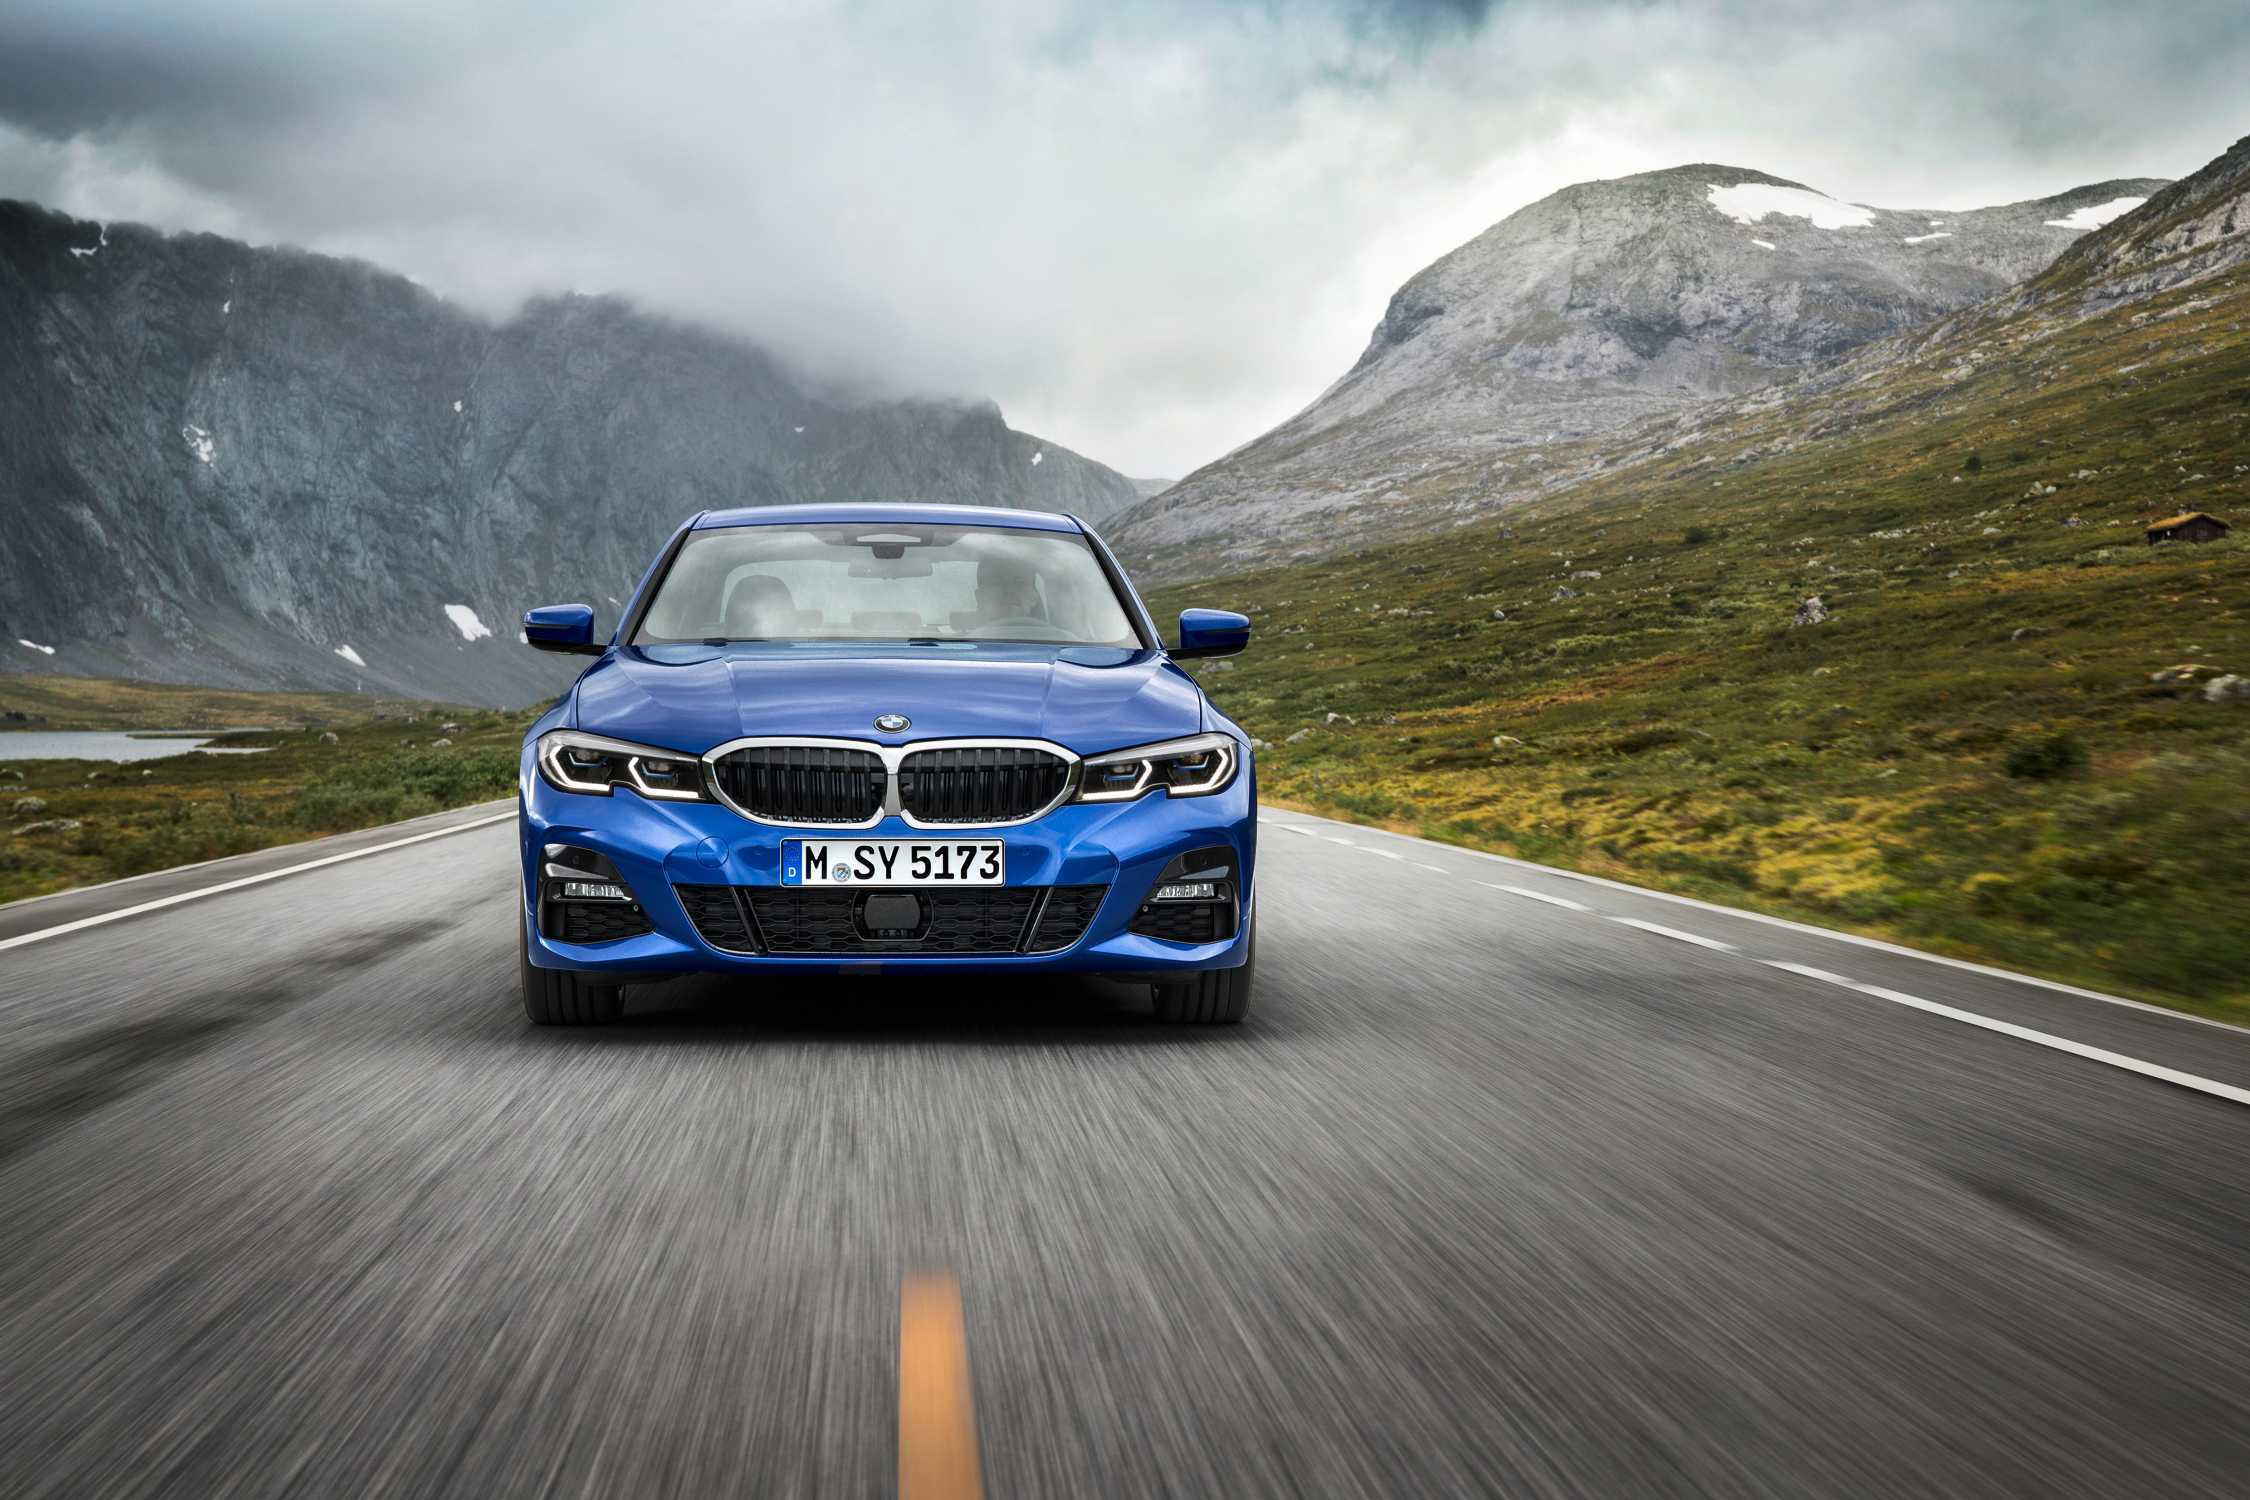 The All-New BMW 3 Series Sedan